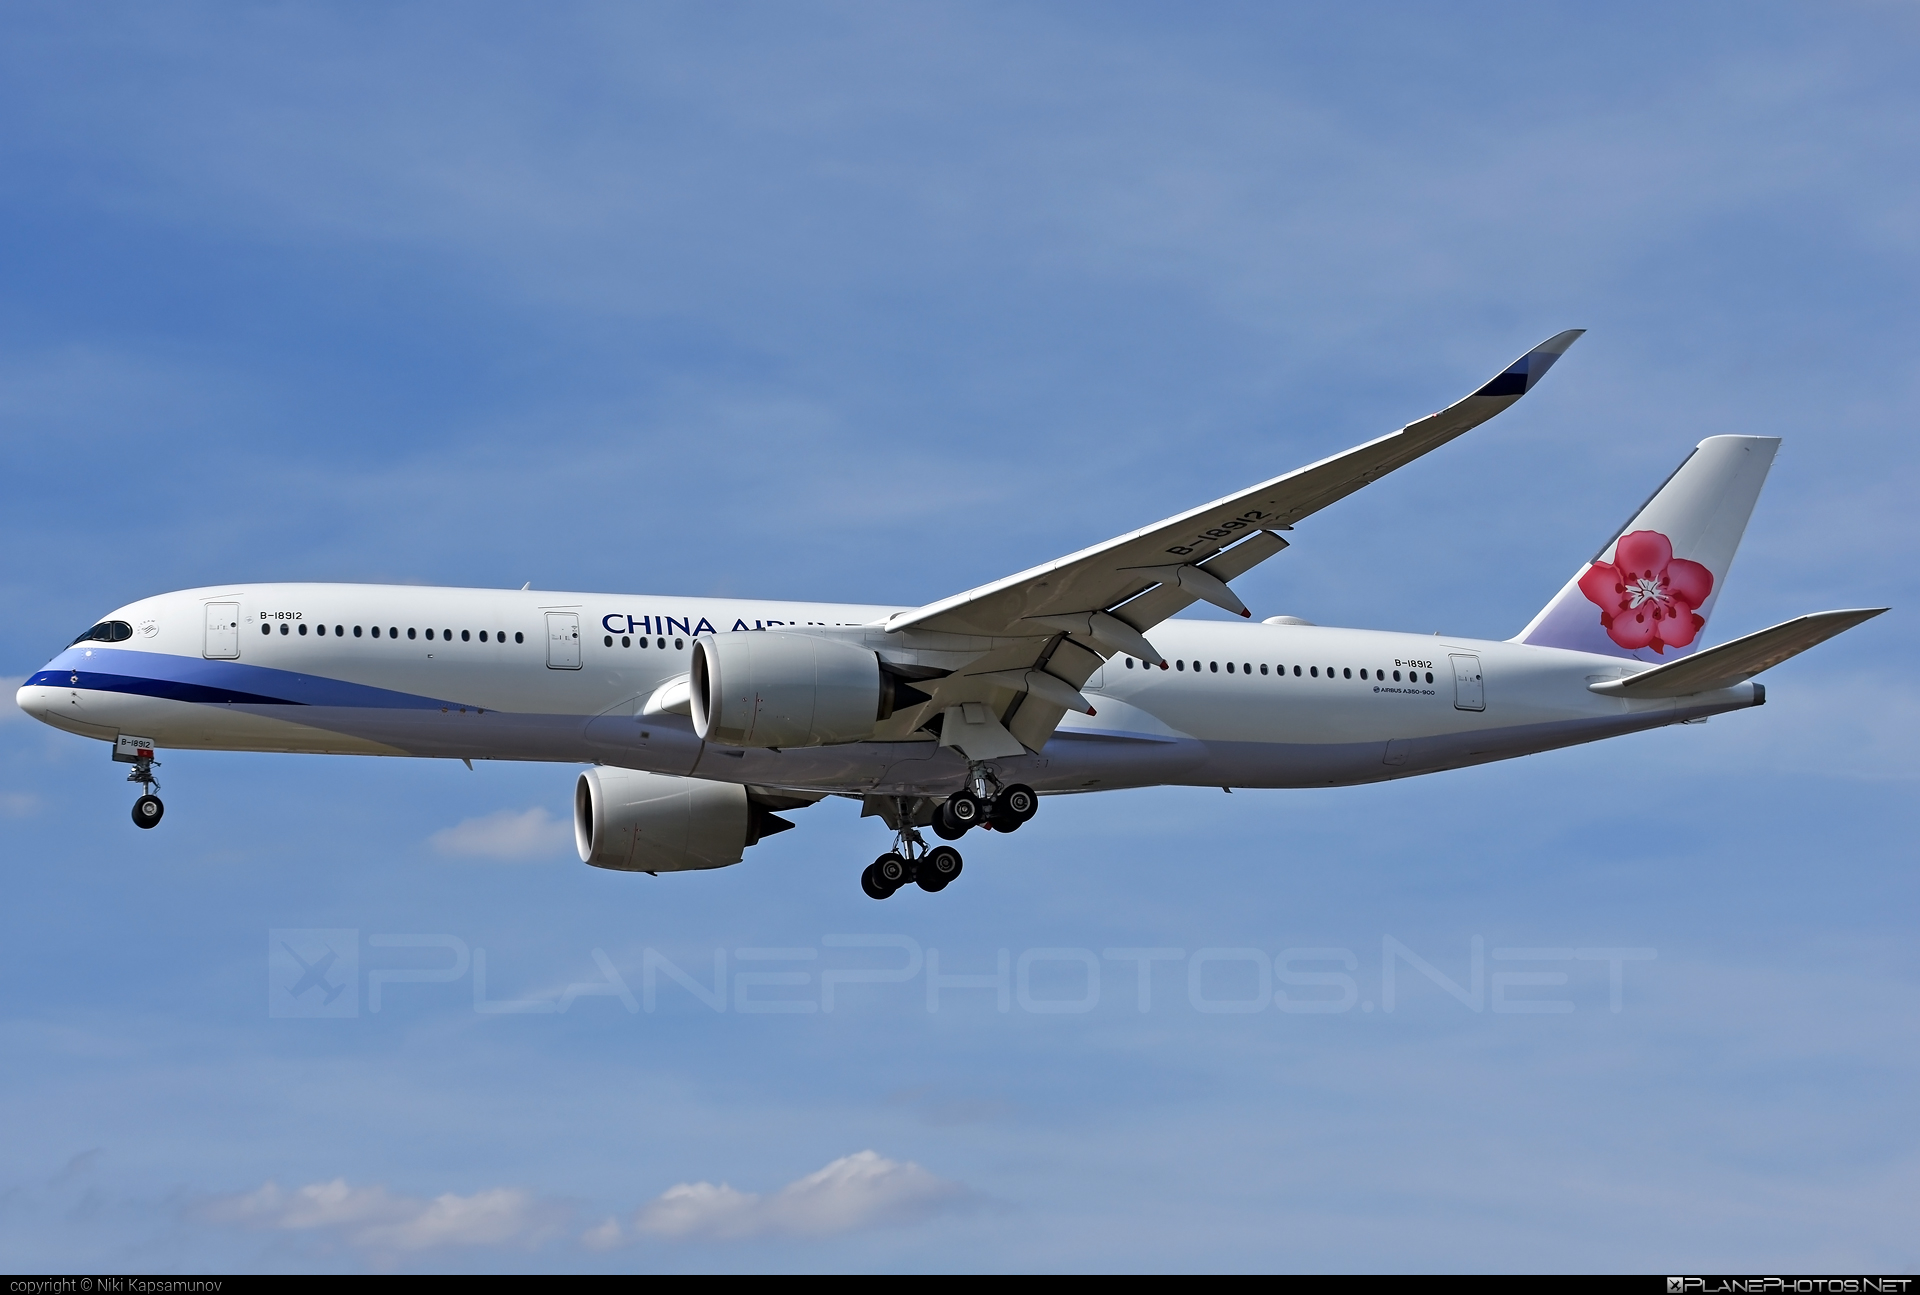 Airbus A350-941 - B-18912 operated by China Airlines #a350 #a350family #airbus #airbus350 #chinaairlines #xwb